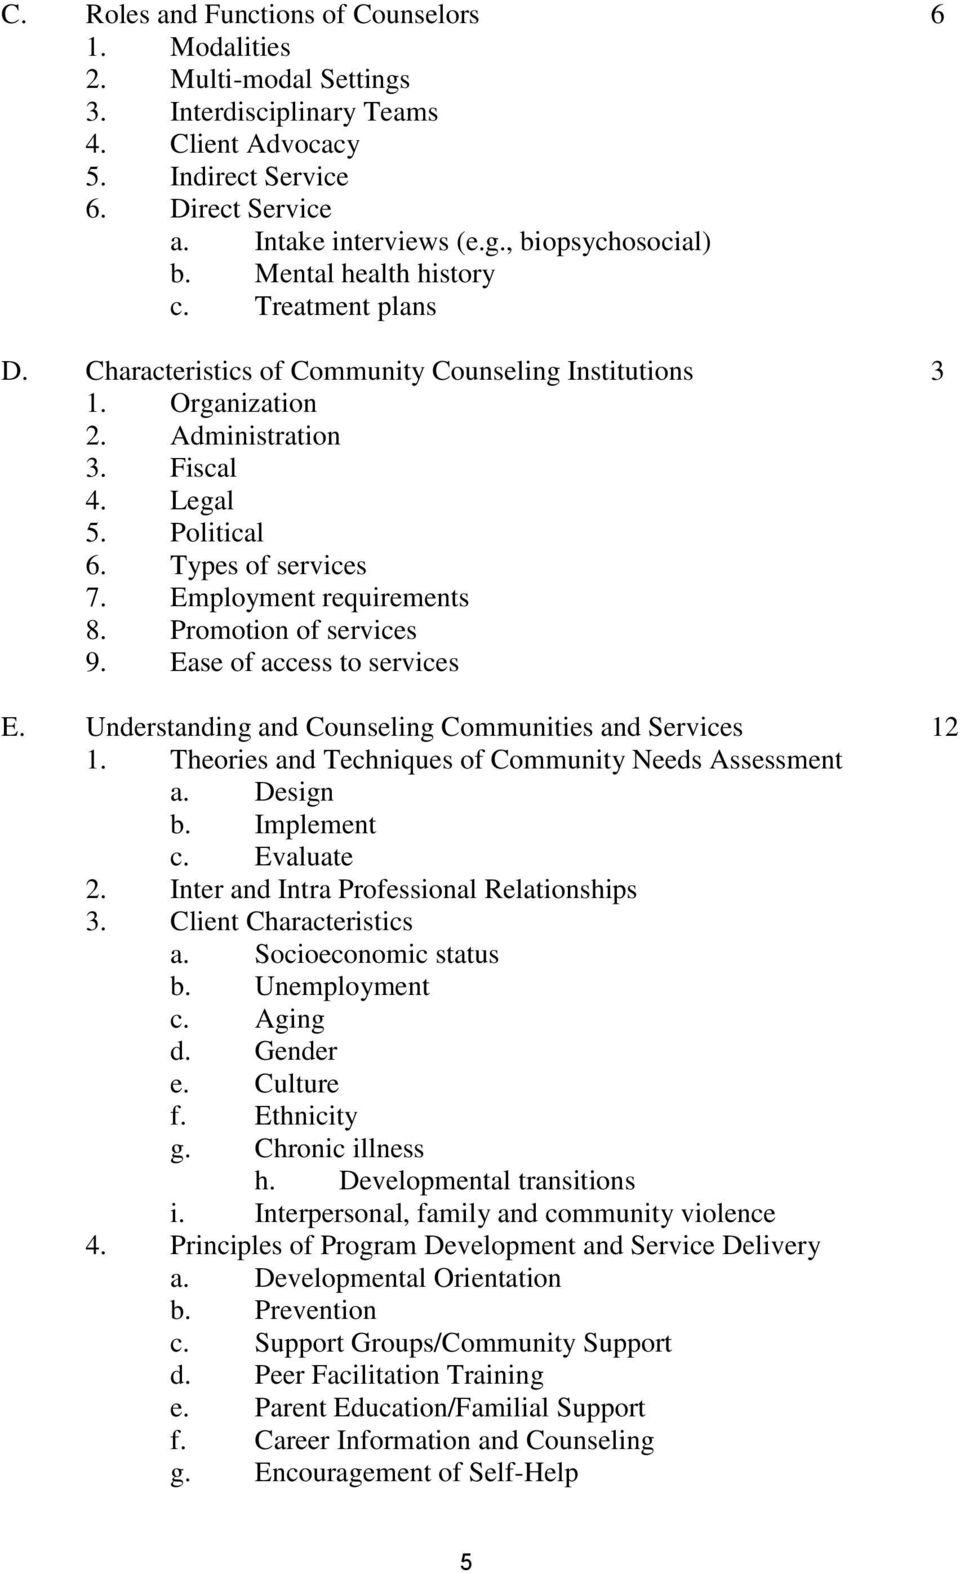 Employment requirements 8. Promotion of services 9. Ease of access to services E. Understanding and Counseling Communities and Services 12 1. Theories and Techniques of Community Needs Assessment a.